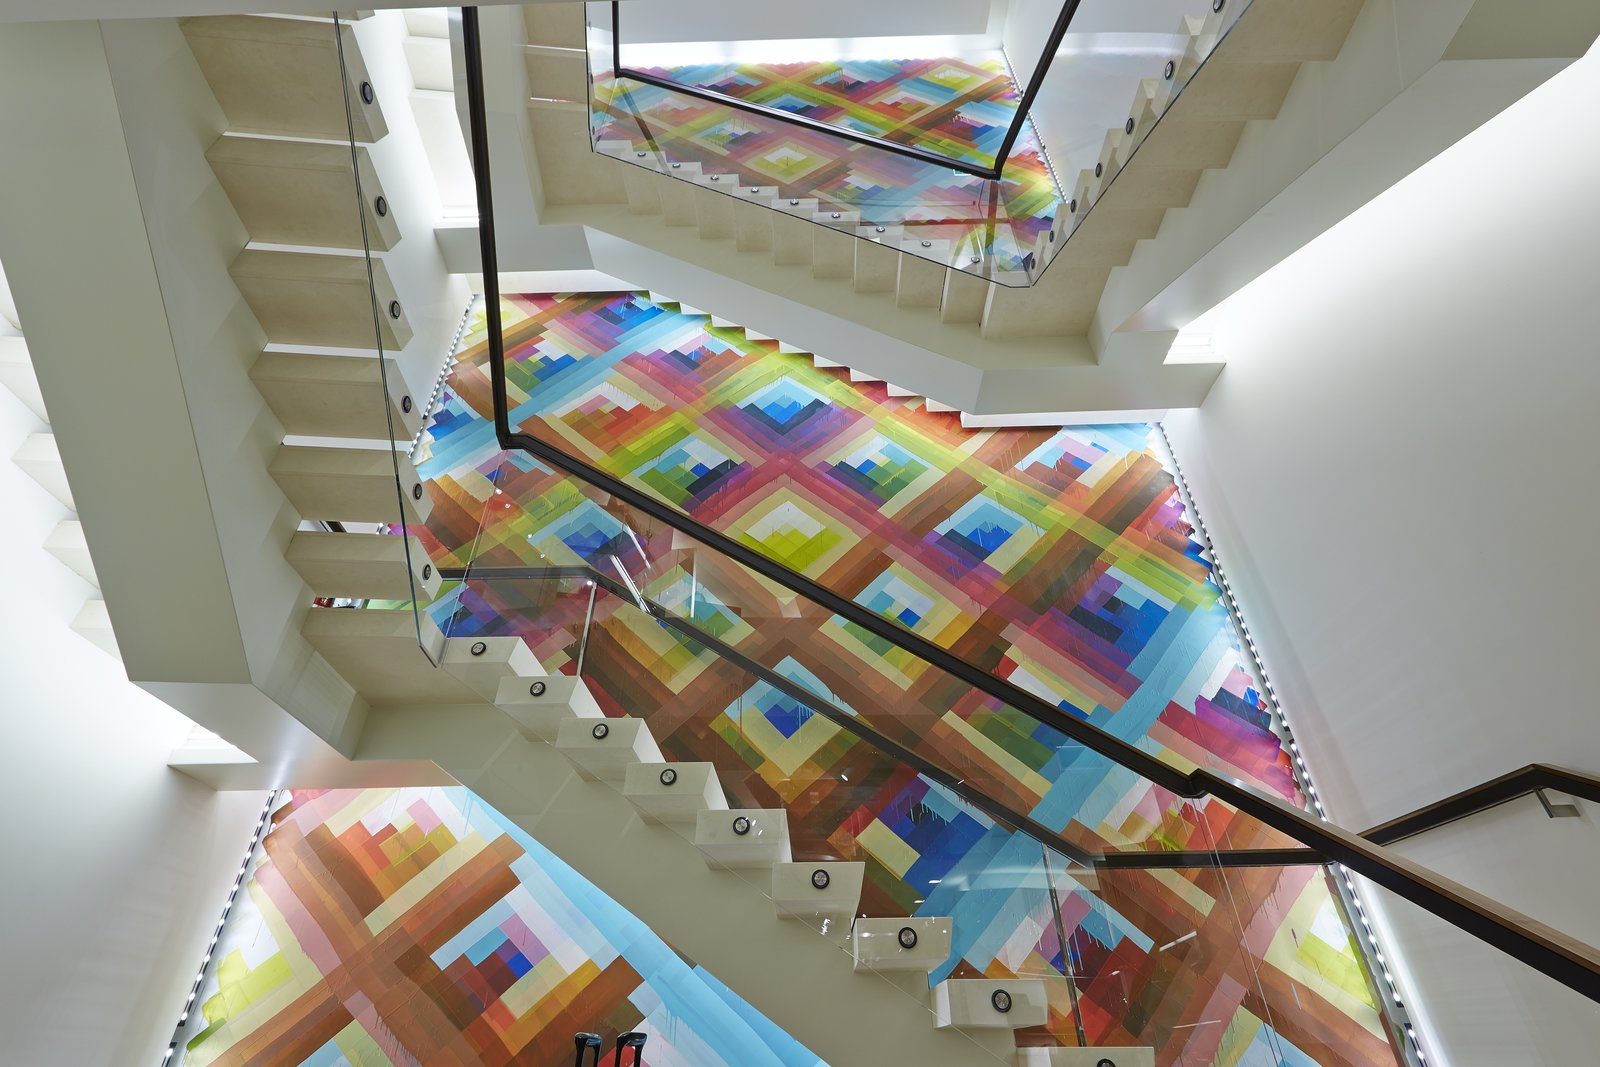 The mural measures roughly 39 feet high by 16 feet wide, its colorful tessellation the backdrop against which other architectural elements cohere.  Photo 4 of 5 in Mural Artist Sets the Scene at Longchamp's Flagship Store in London